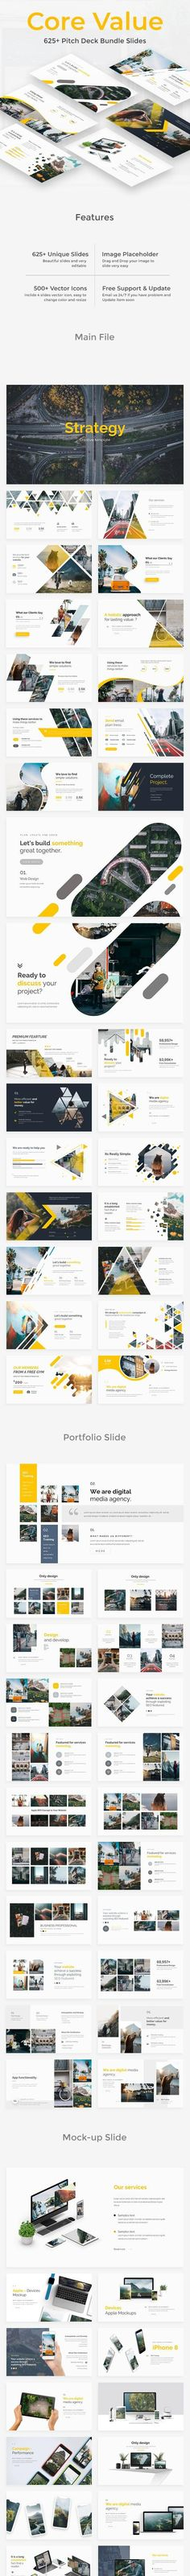 Buy Core Value Pitch Deck Bundle 3 in 1 Powerpoint Template by ZinStudio on GraphicRiver. About Template unique multipurpose slides Very easy modify widescreen Using free fonts (please r. Business Presentation, Presentation Design, Presentation Templates, Creative Powerpoint Templates, Core Values, Keynote Template, Pitch, Flyer Design